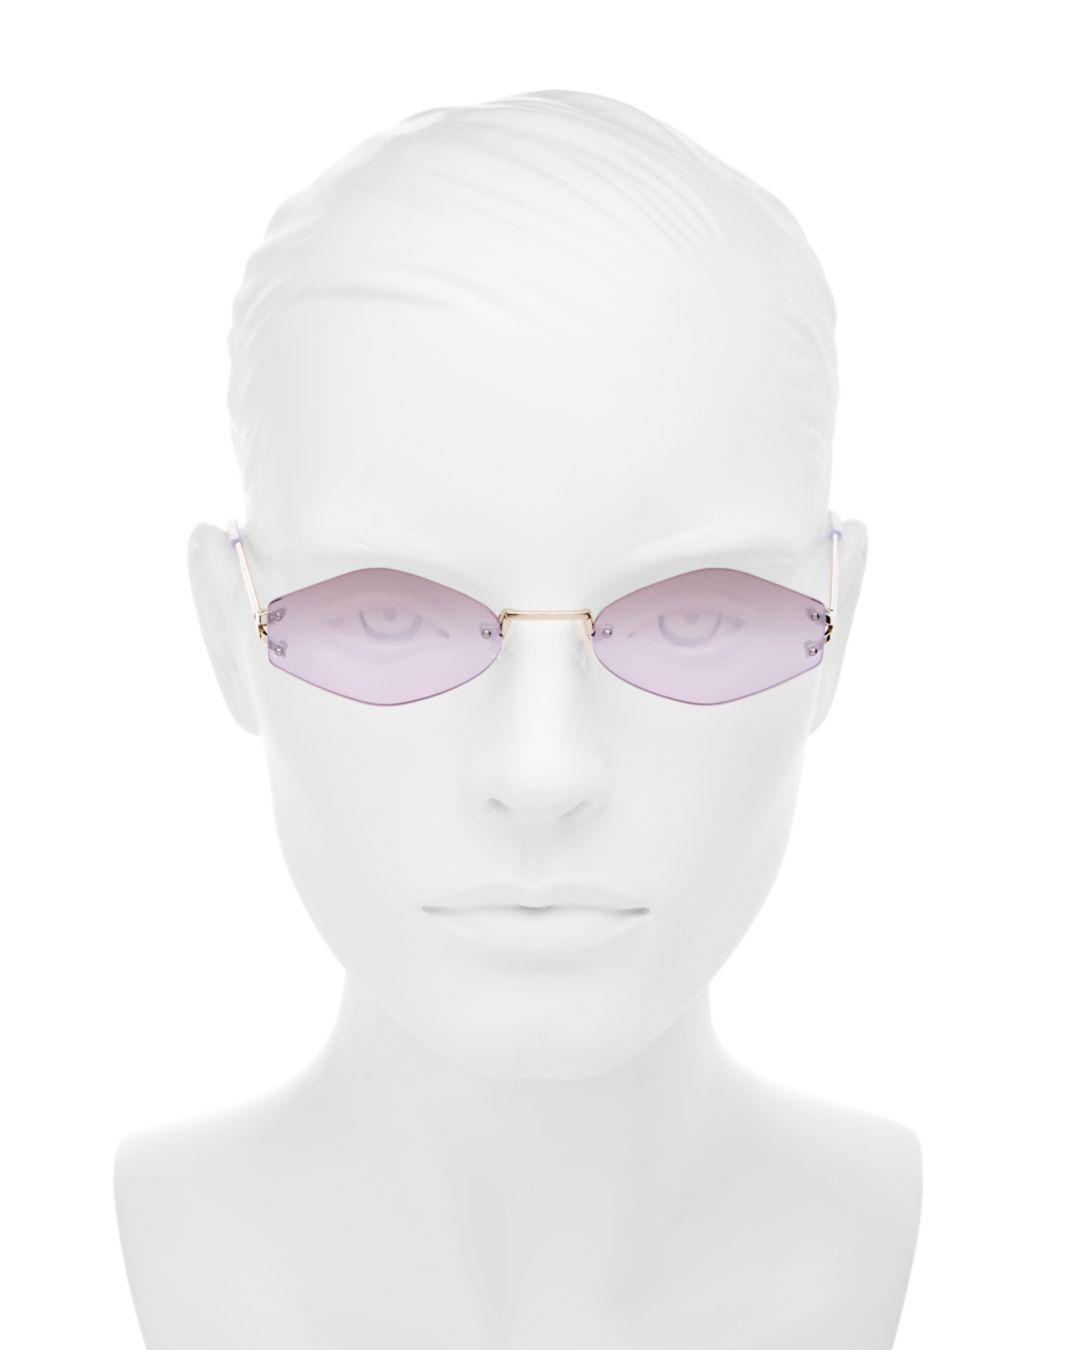 7e716ba2e8 Kendall + Kylie Kendall And Kylie Women s Kye Mirrored Round Sunglasses